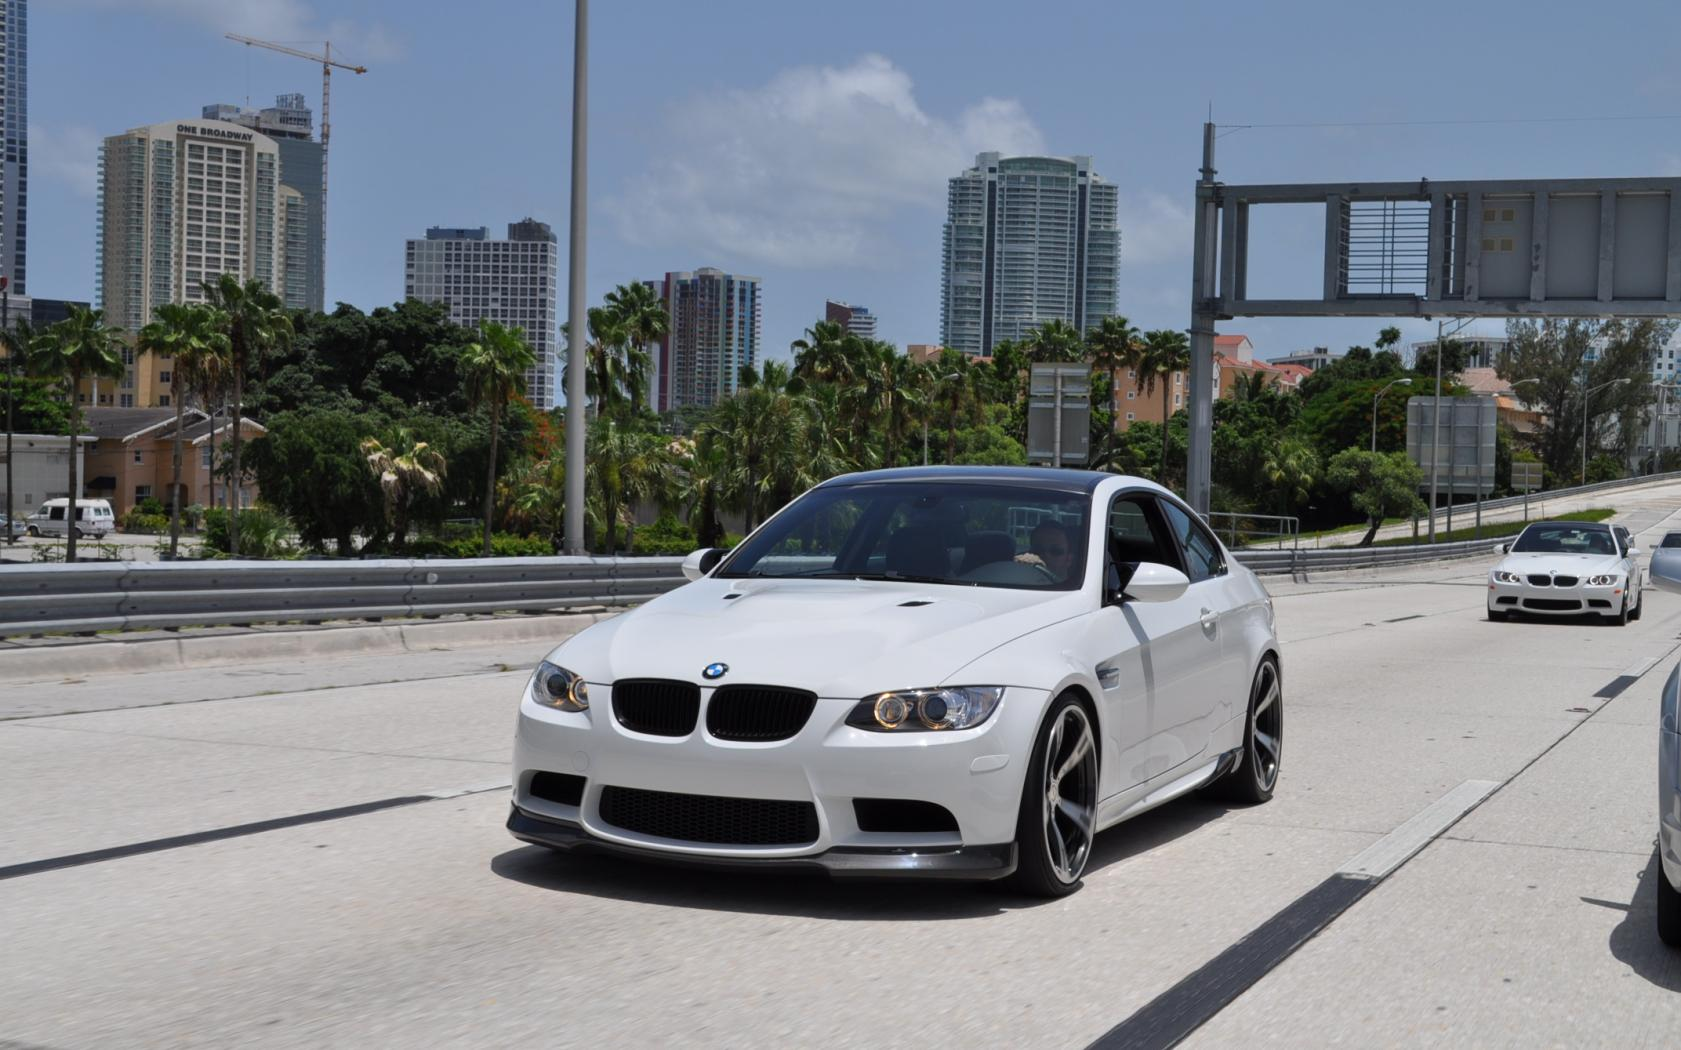 Craigslist South Coast Cars For Sale By Dealer Tampa Bay Cars Trucks By Dealer Craigslist Used